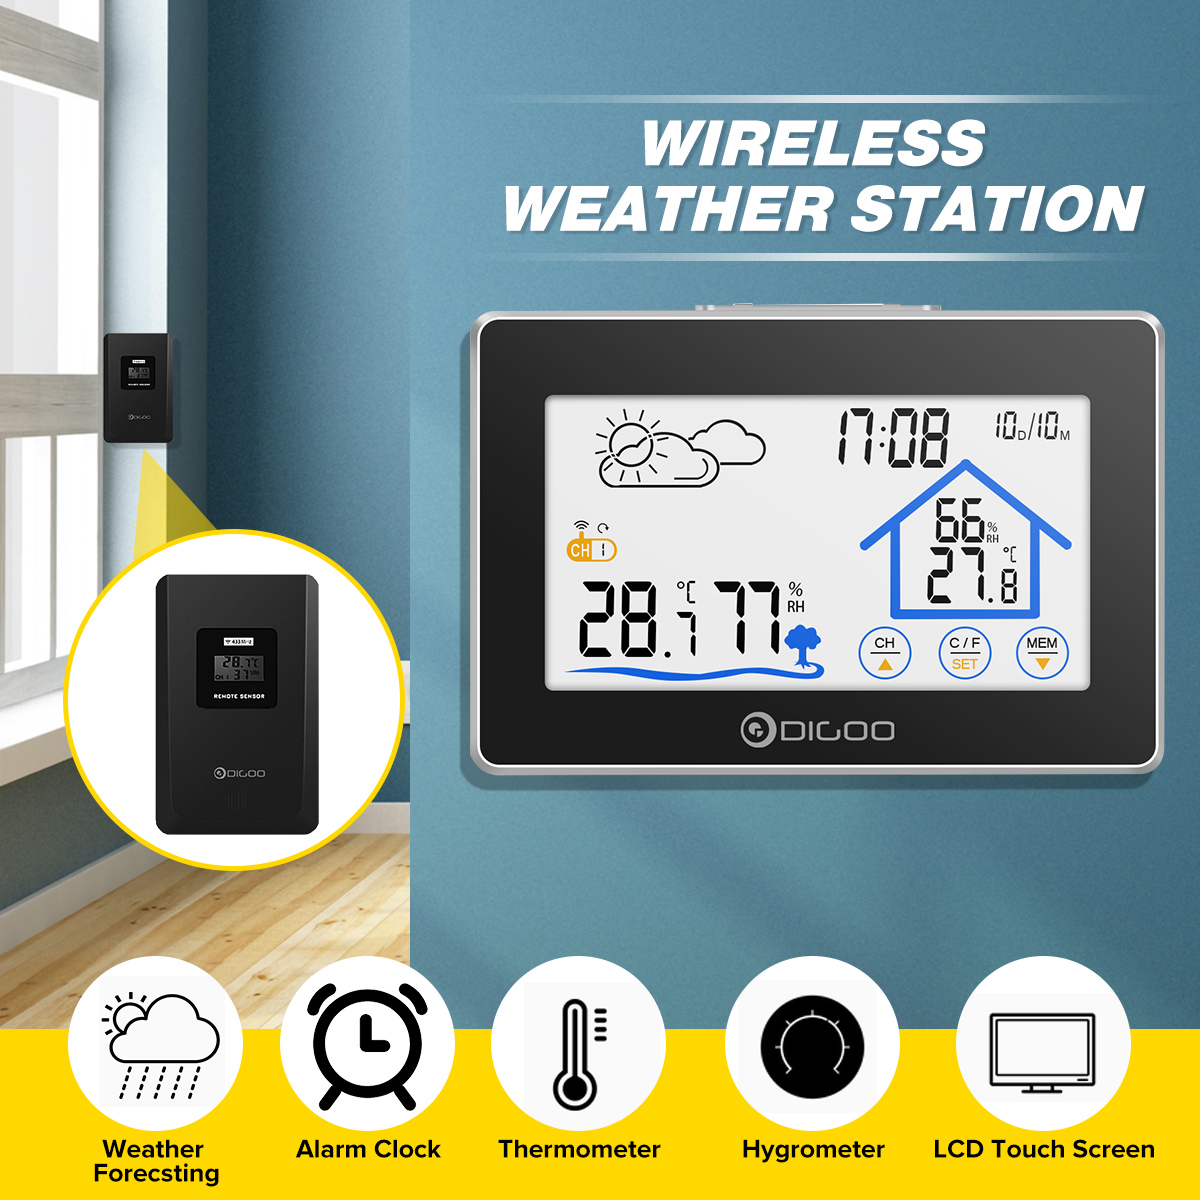 Digoo DG-TH8380 Big Screen Weather Station Thermometer Indoor Outdoor Hygromet Temperature Humidity Sensor Clock ForecastDigoo DG-TH8380 Big Screen Weather Station Thermometer Indoor Outdoor Hygromet Temperature Humidity Sensor Clock Forecast